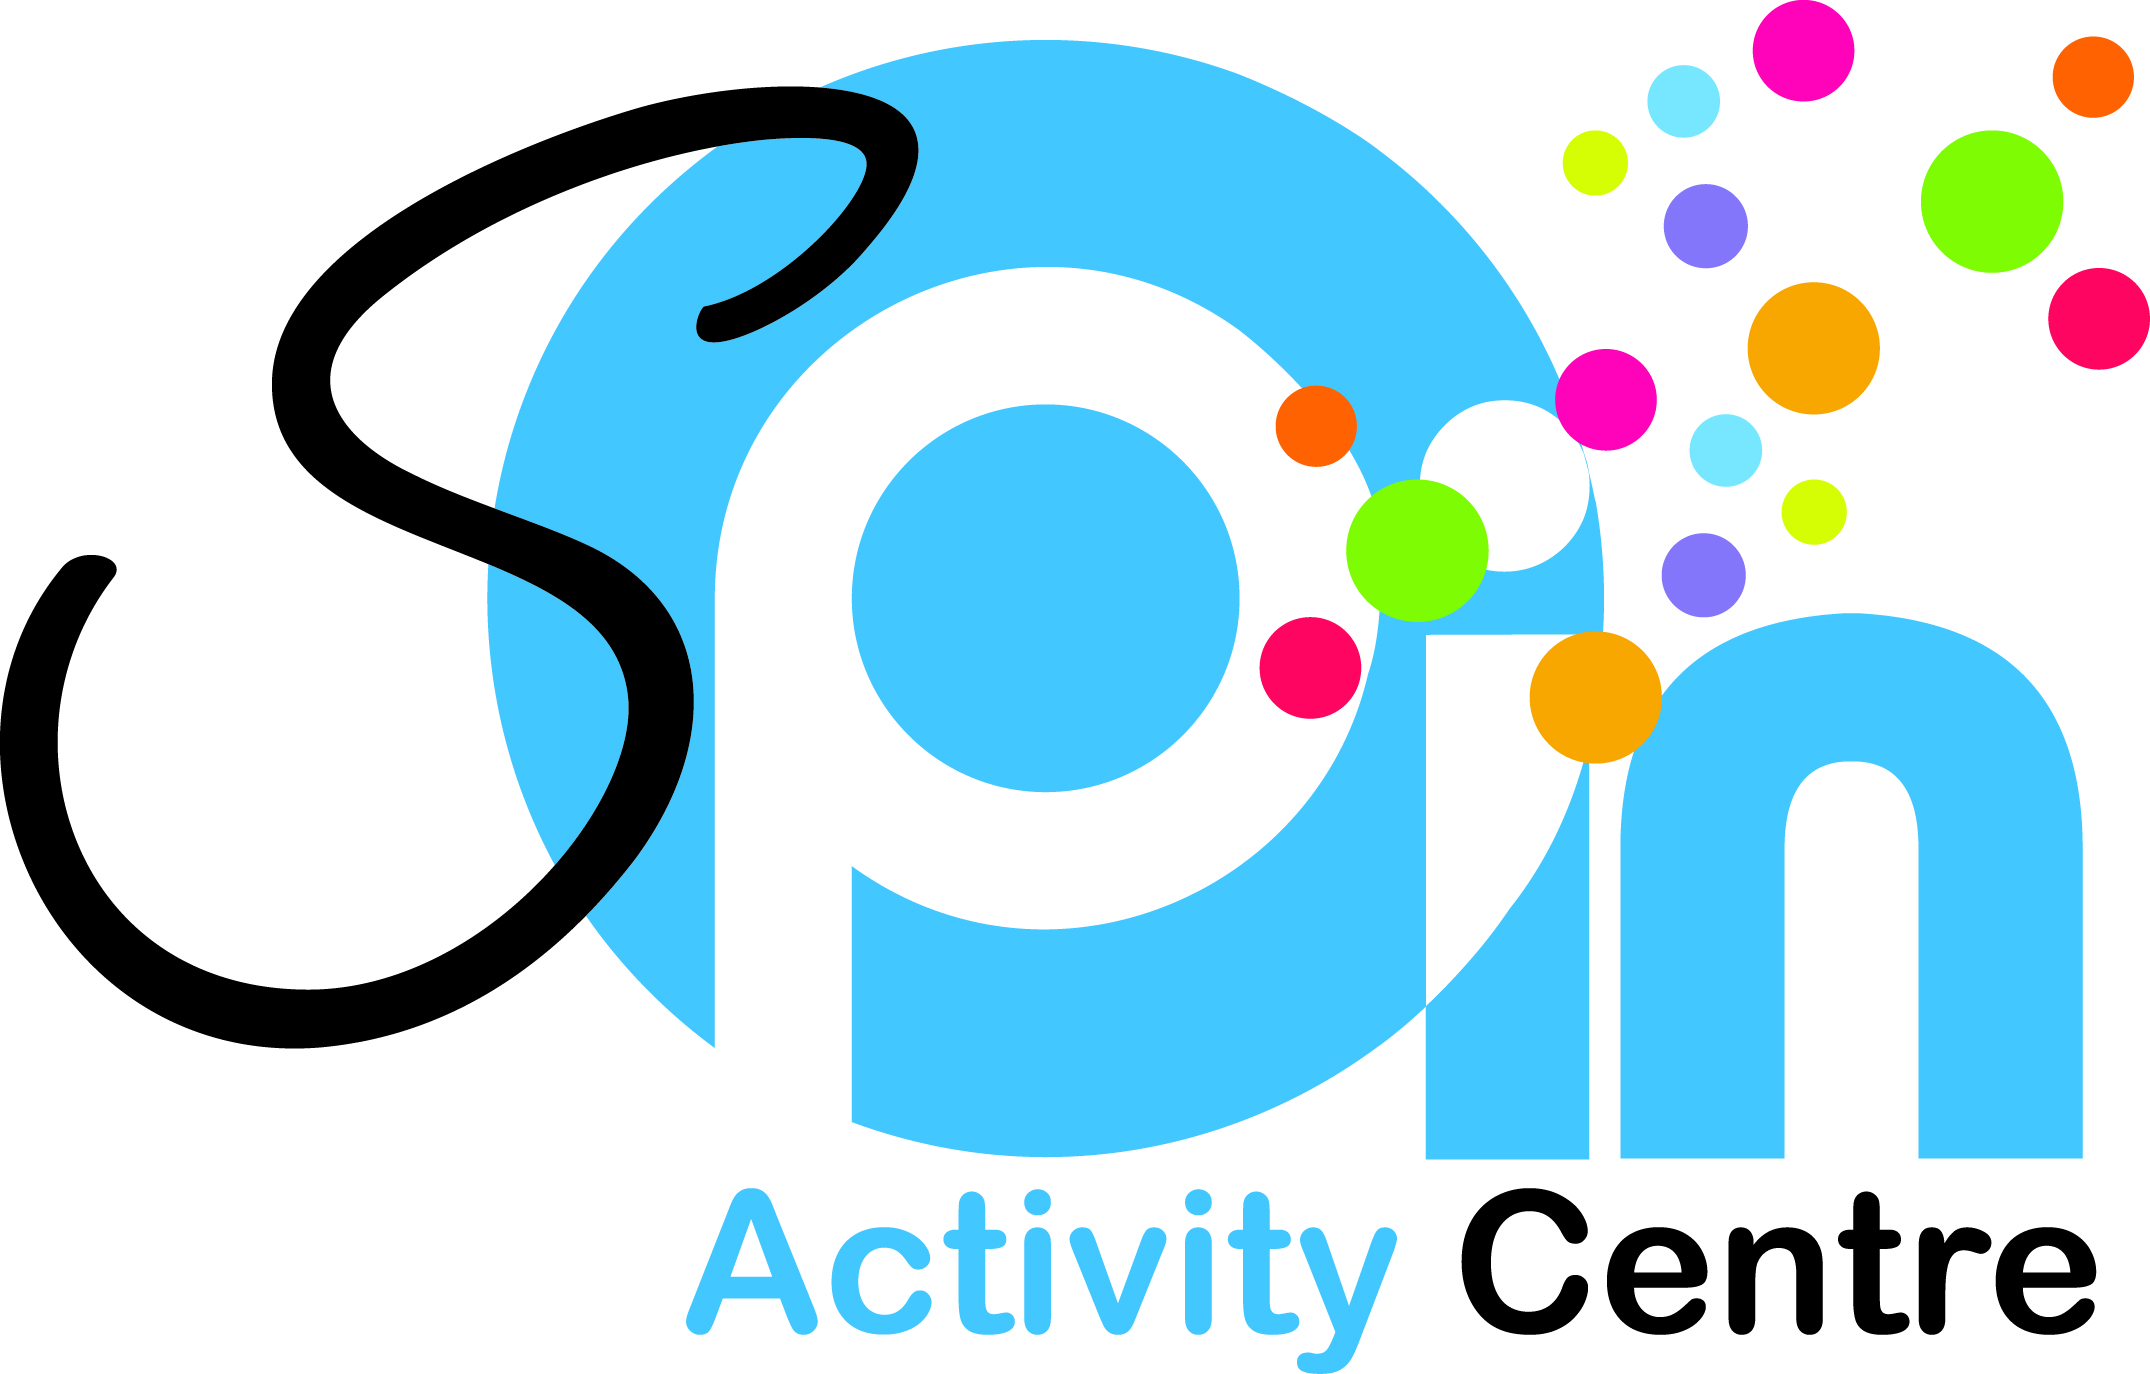 Spin Activity Centre